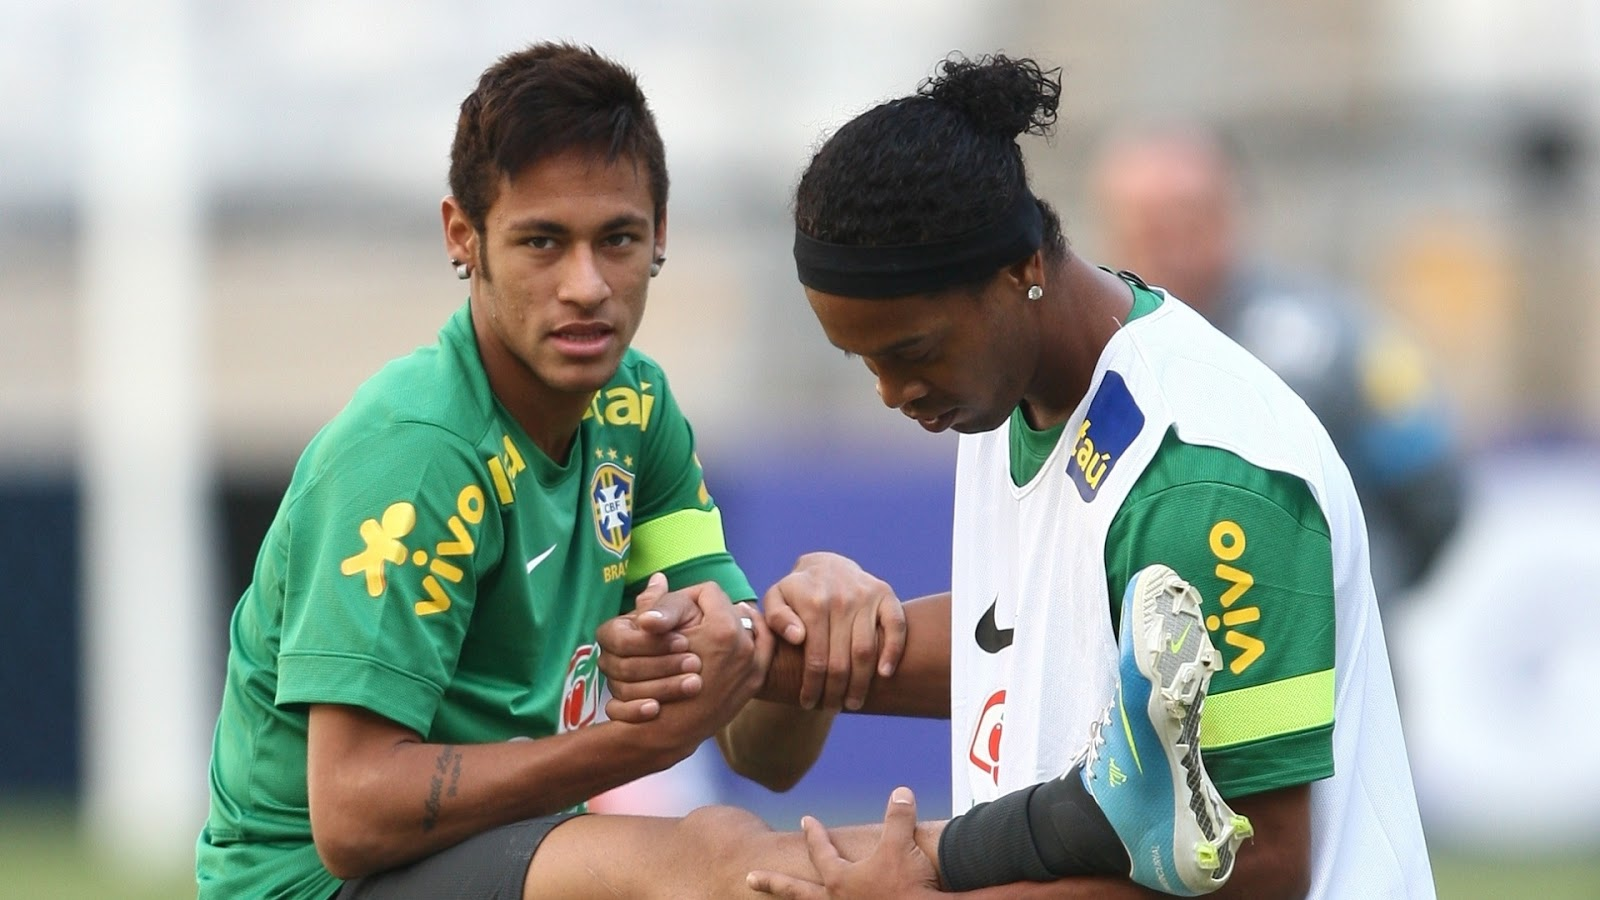 Neymar Training with Ronaldinho Wallpaper | Take Wallpaper